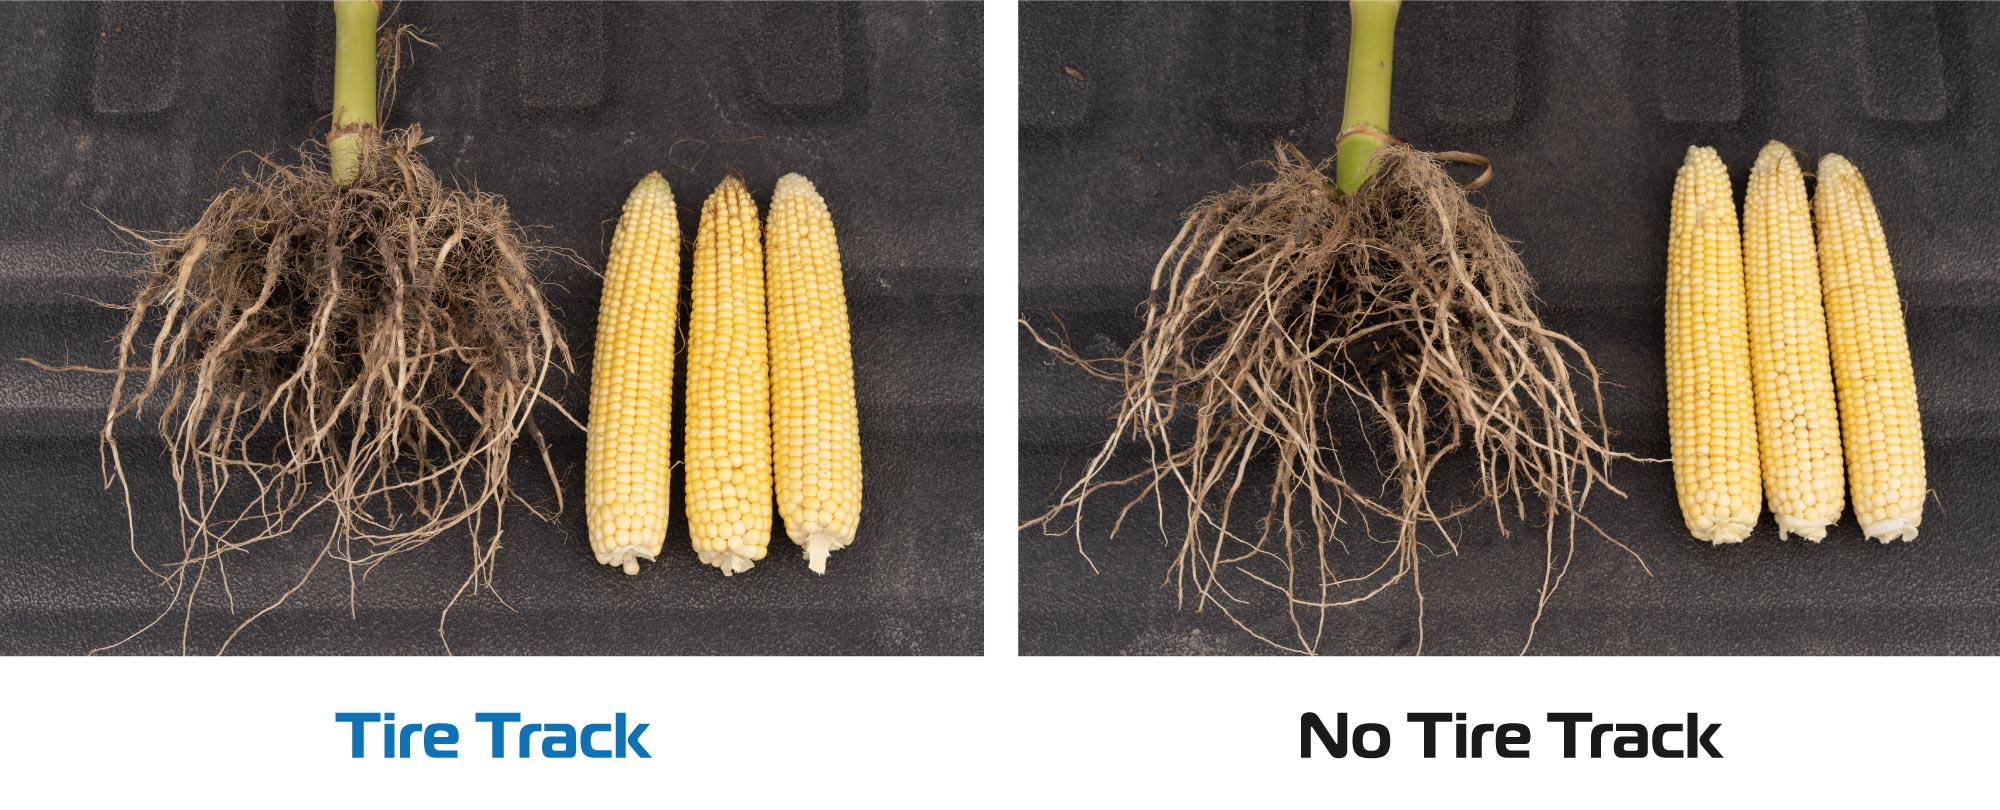 A corn plant comparison shows little difference in root development and corn ear size between plants growing in the Goodyear LSW tire track and those growing outside the tire track.